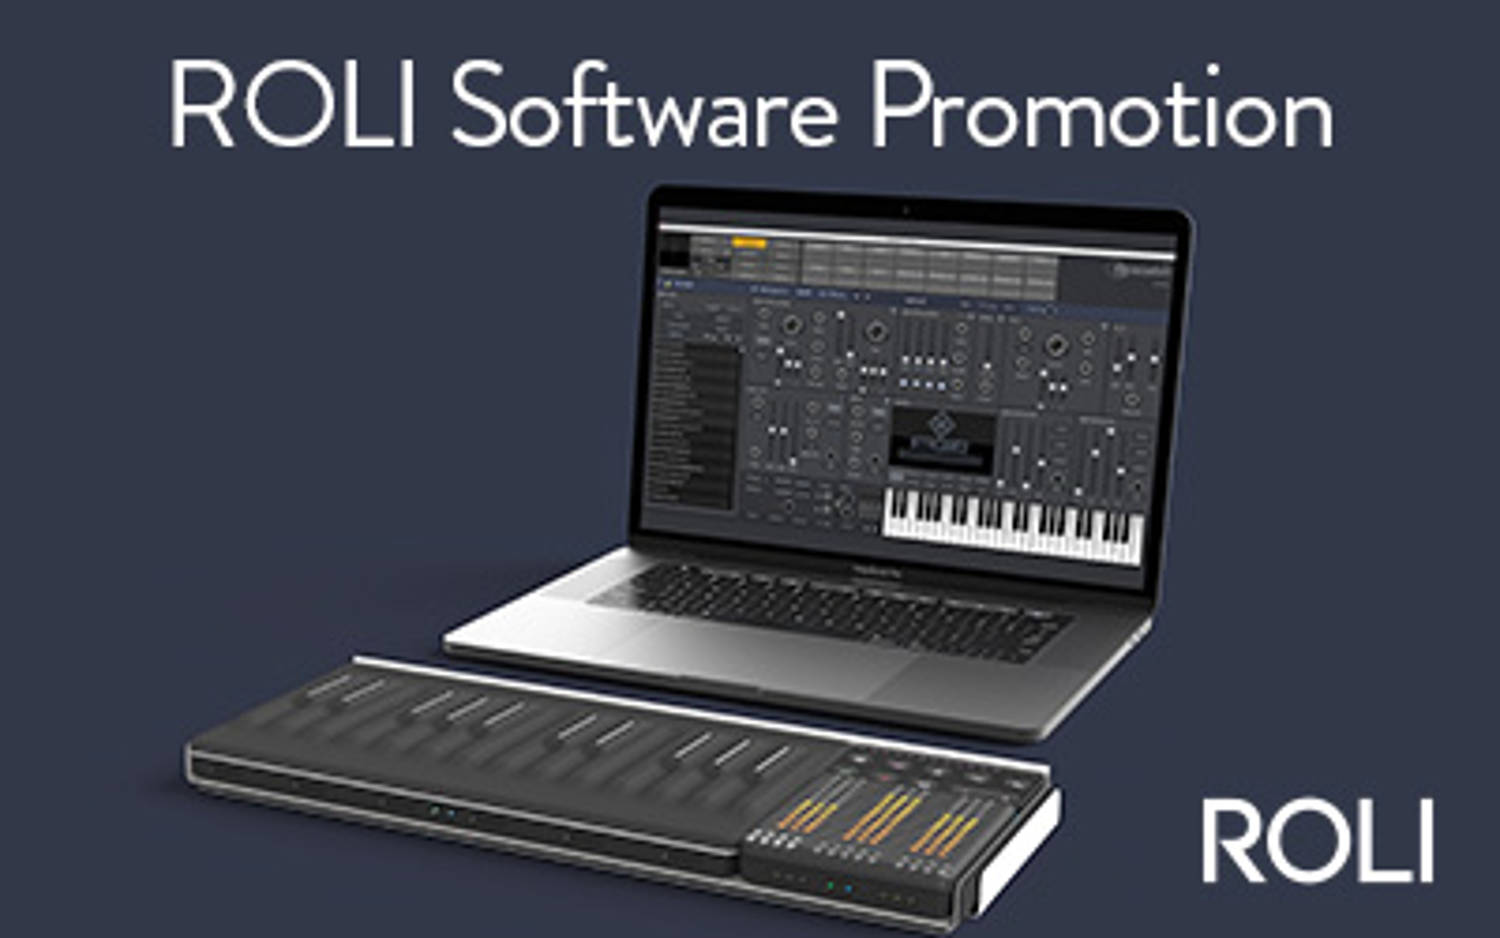 ROLI Software Promotion